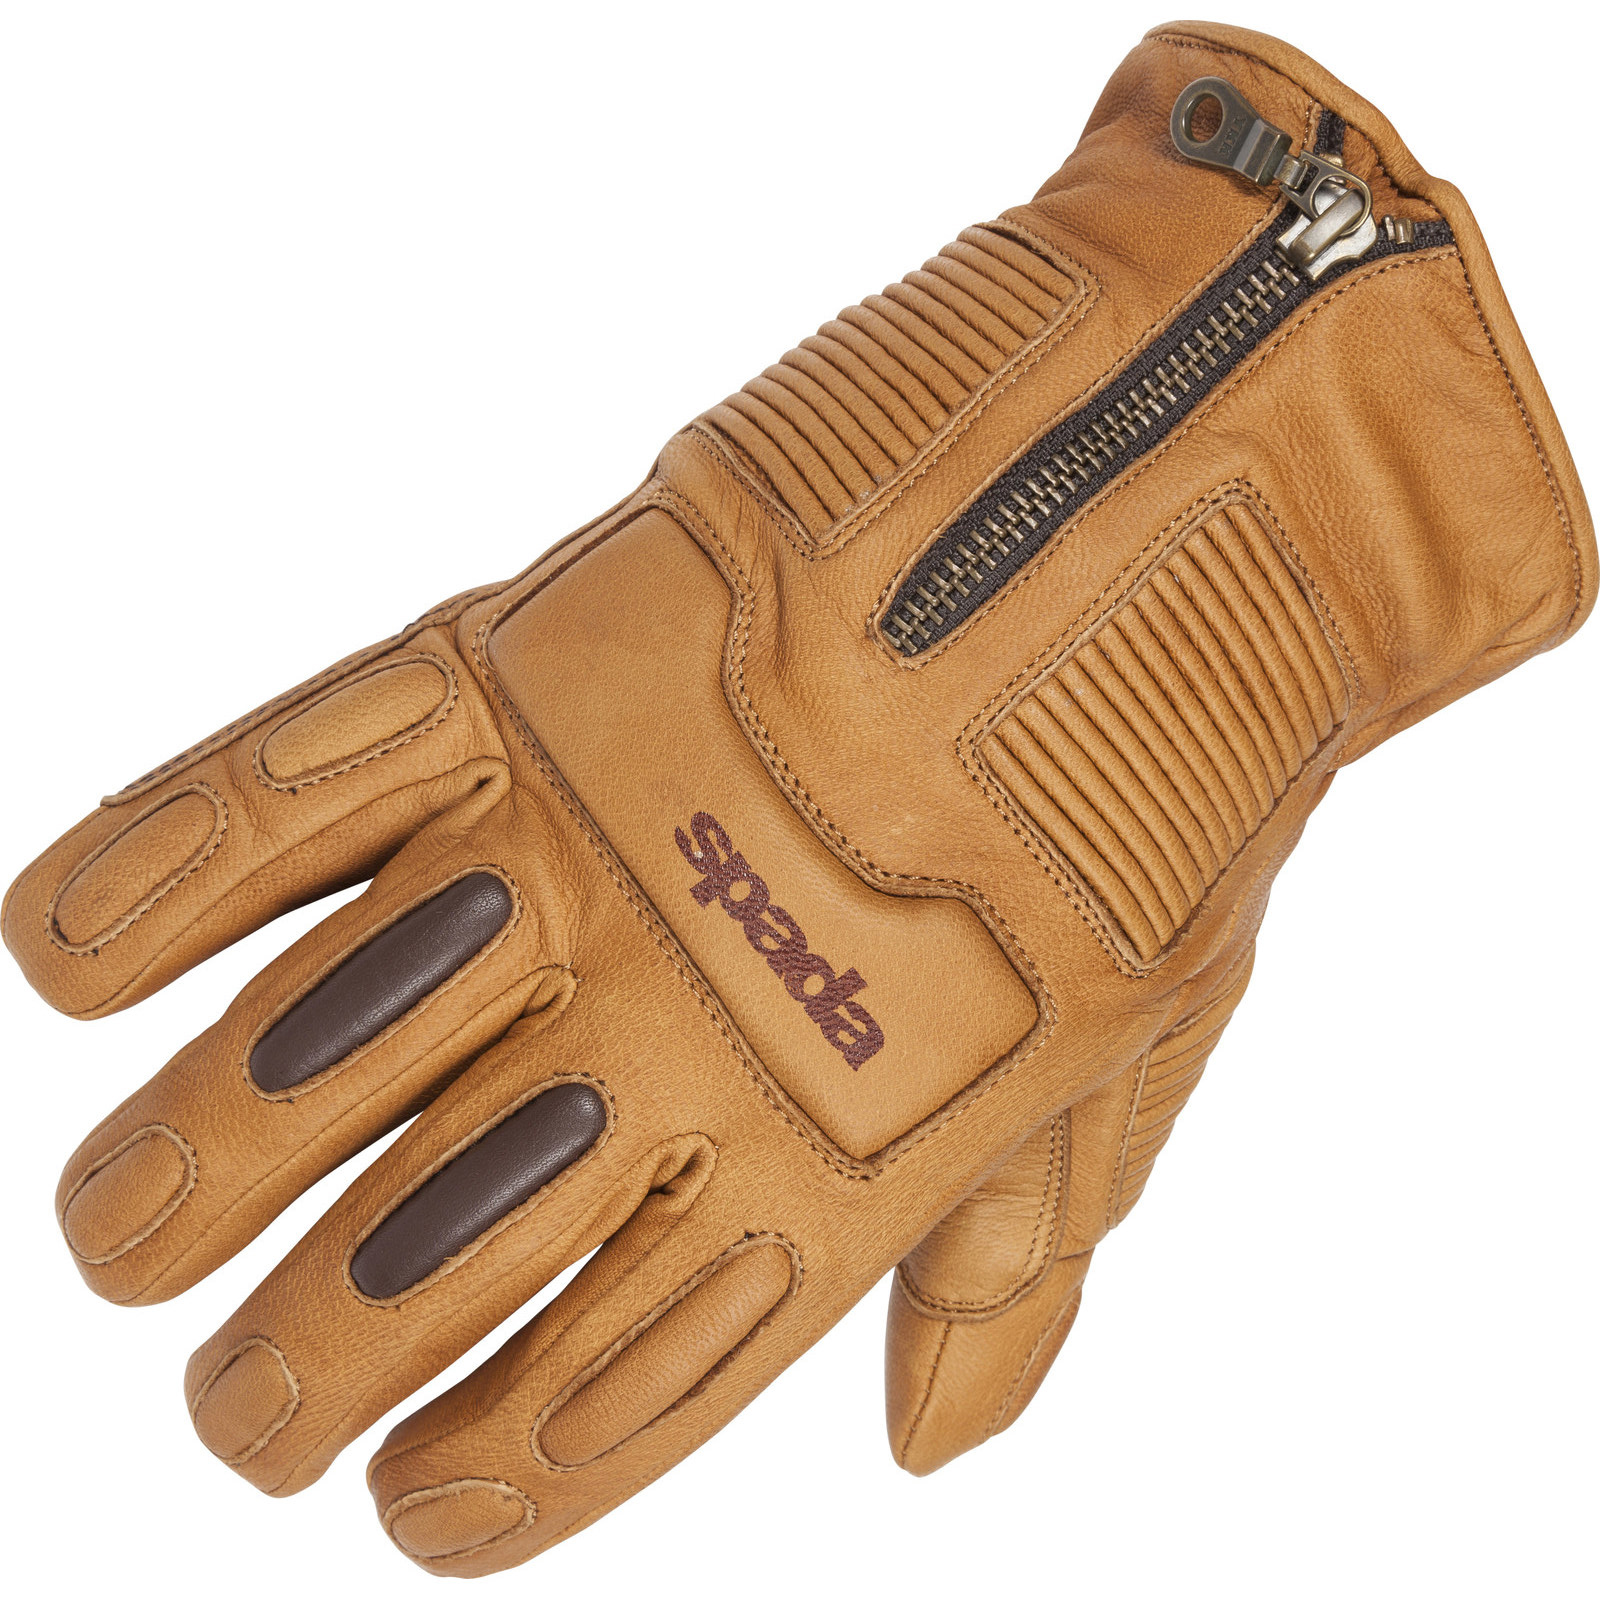 Motorcycle leather gloves waterproof - Picture 2 Of 3